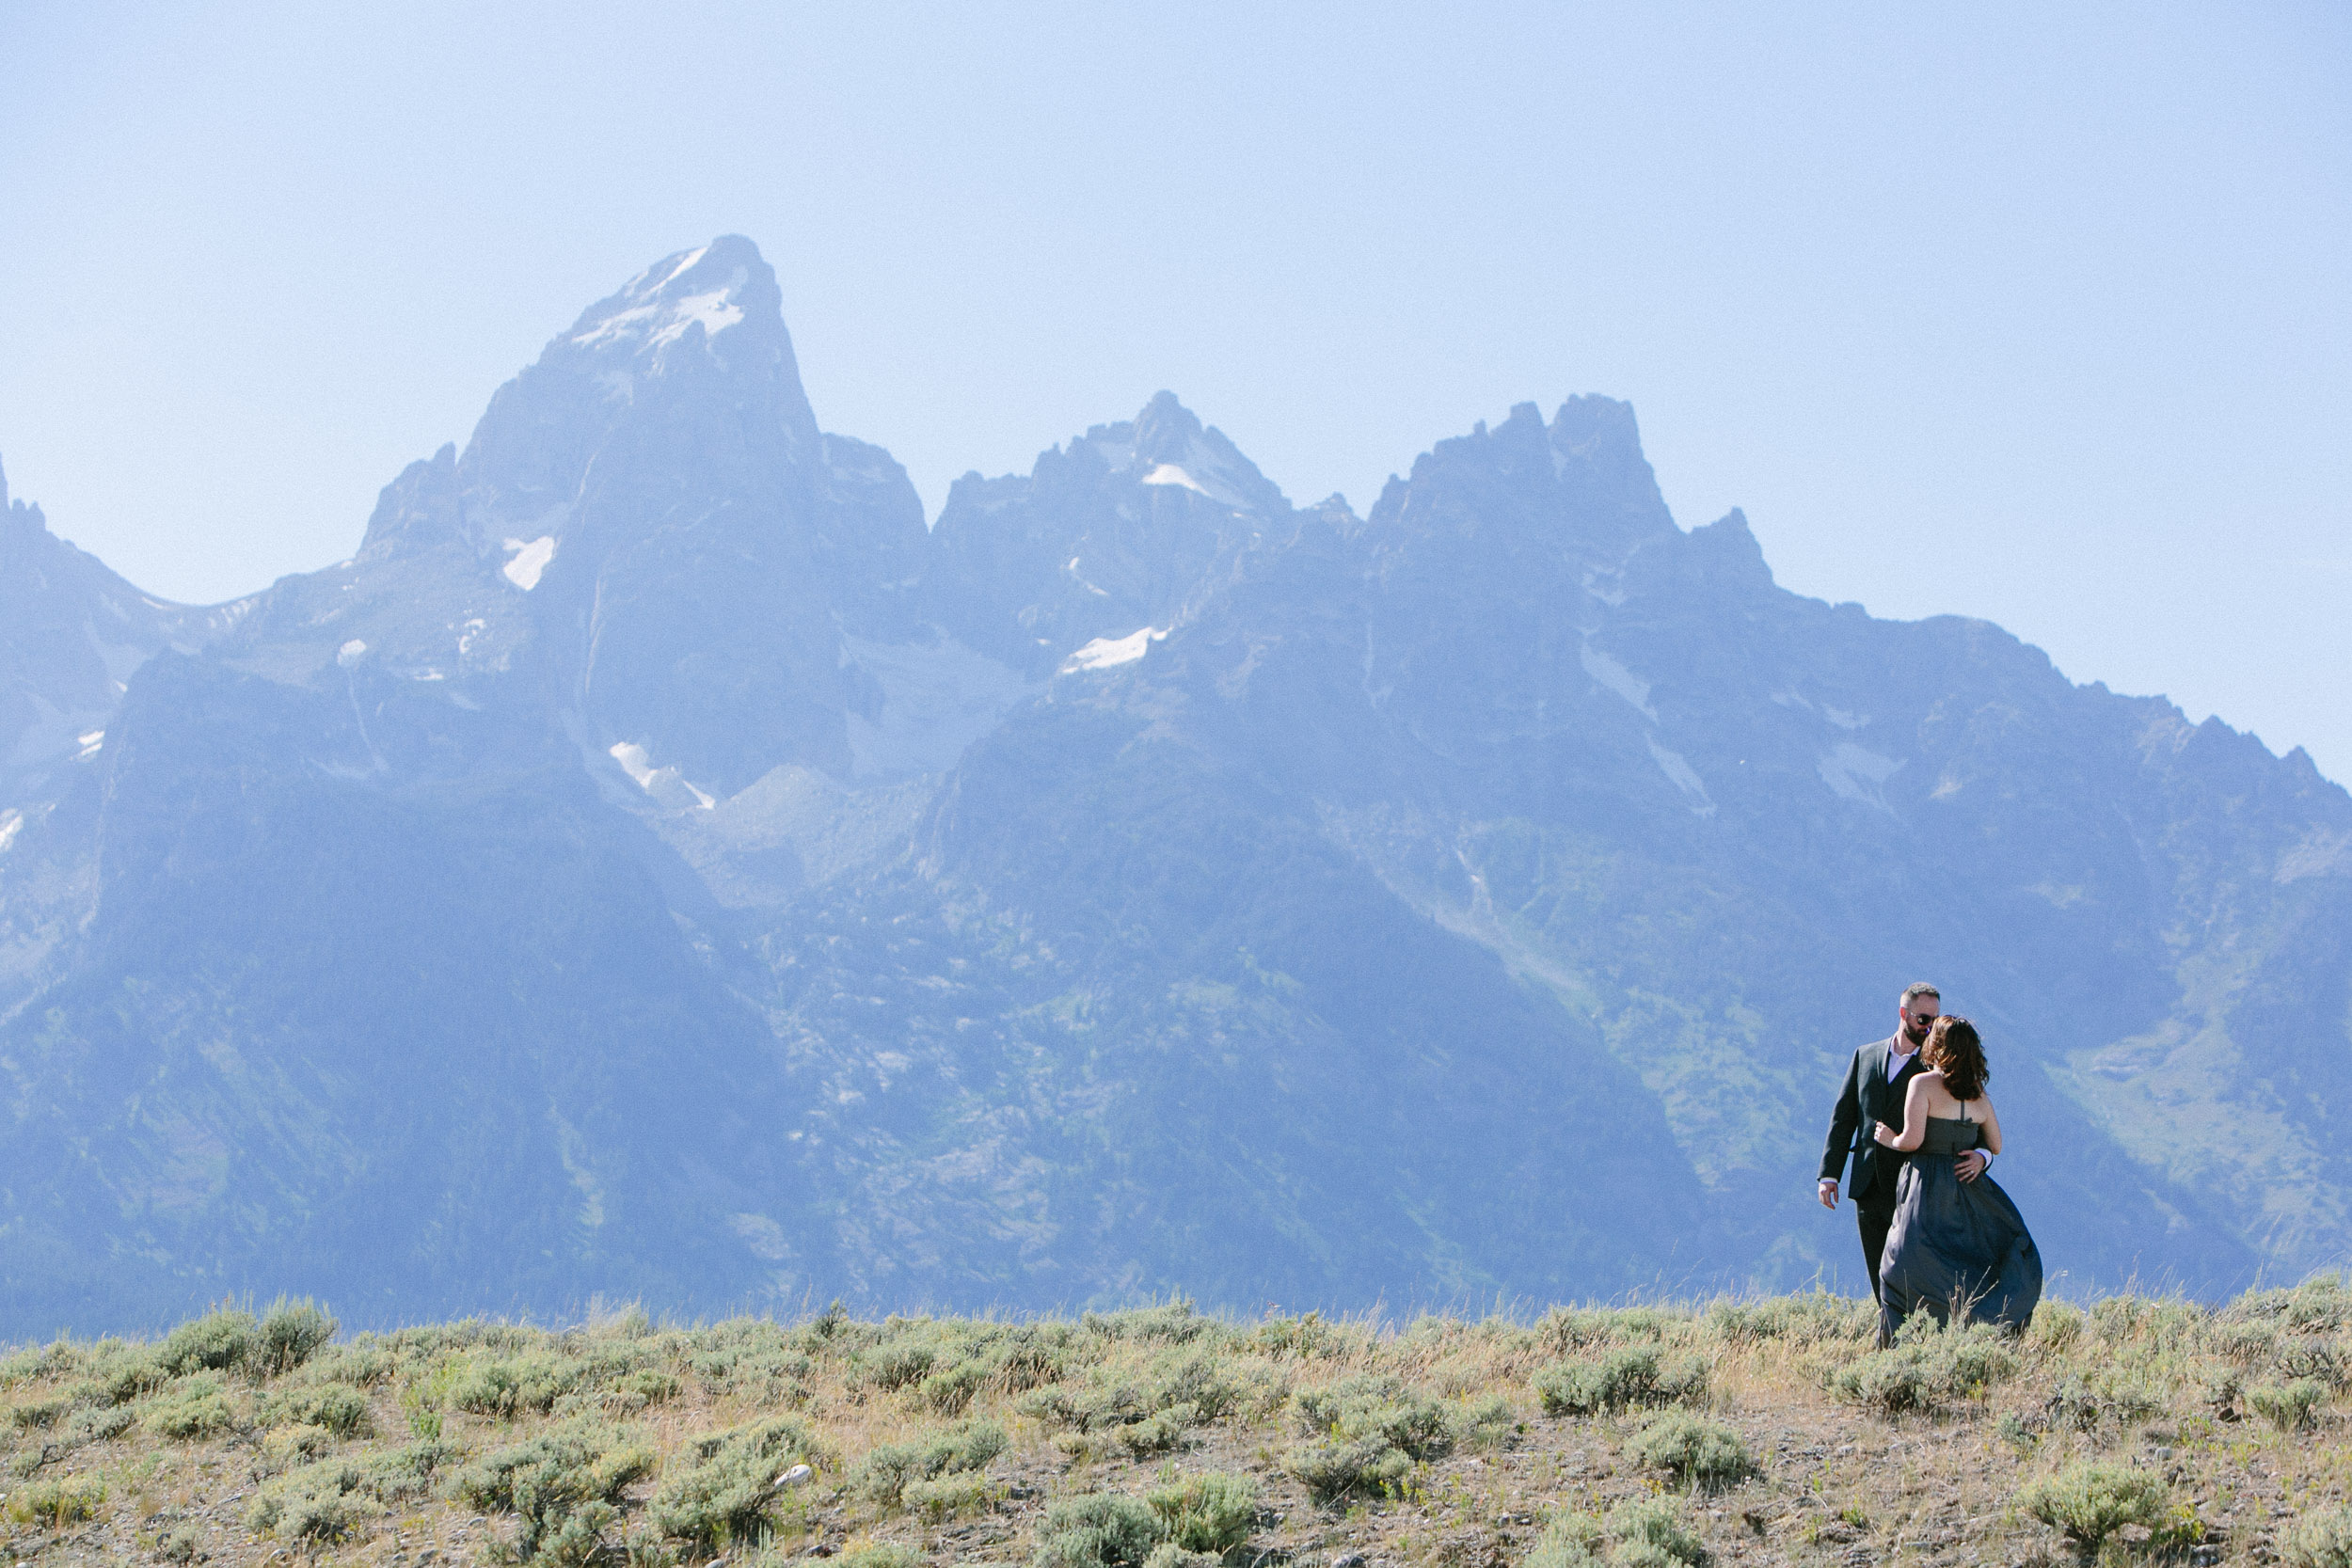 002_The best wedding photography from Jackson Hole, Wyoming and beyond by photographer Hannah Hardaway.jpg